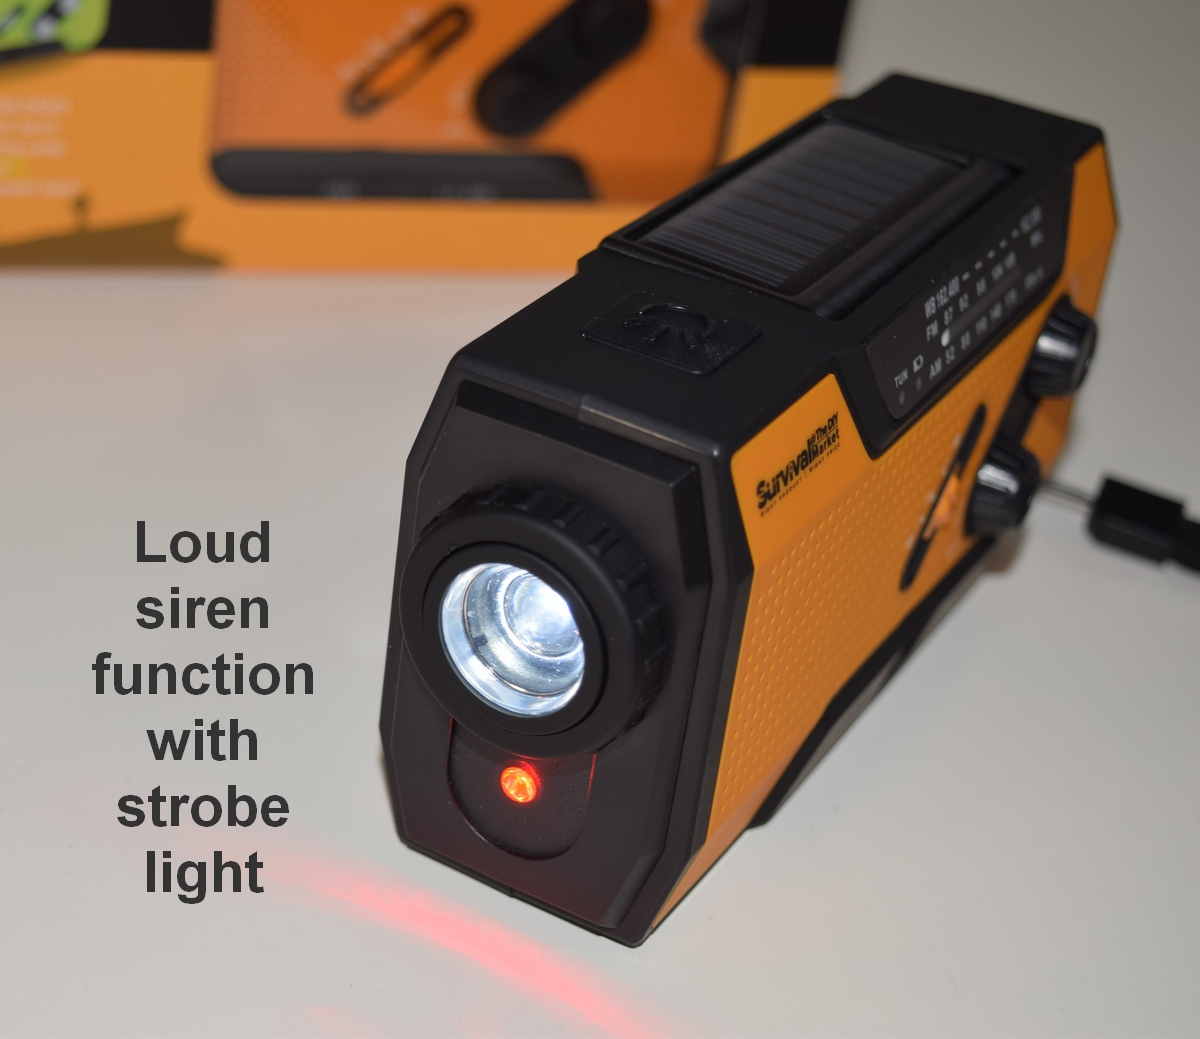 The survival radio includes a bright flashlight and a flashing red alarm light with loud siren function